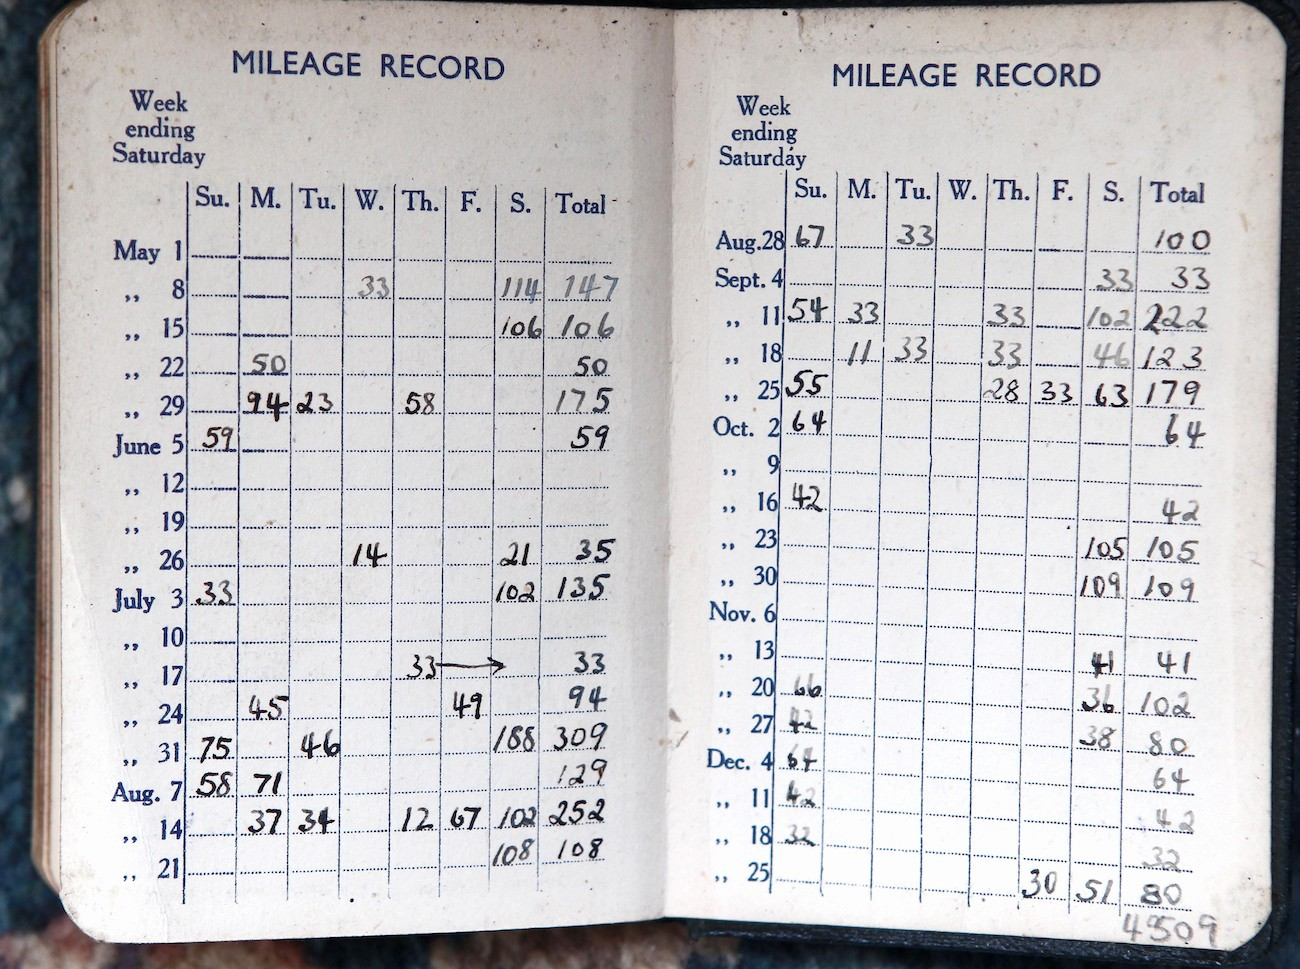 Example Mileage Log for Taxes Fresh Mileage Spreadsheet for Taxes Google Spreadshee Mileage